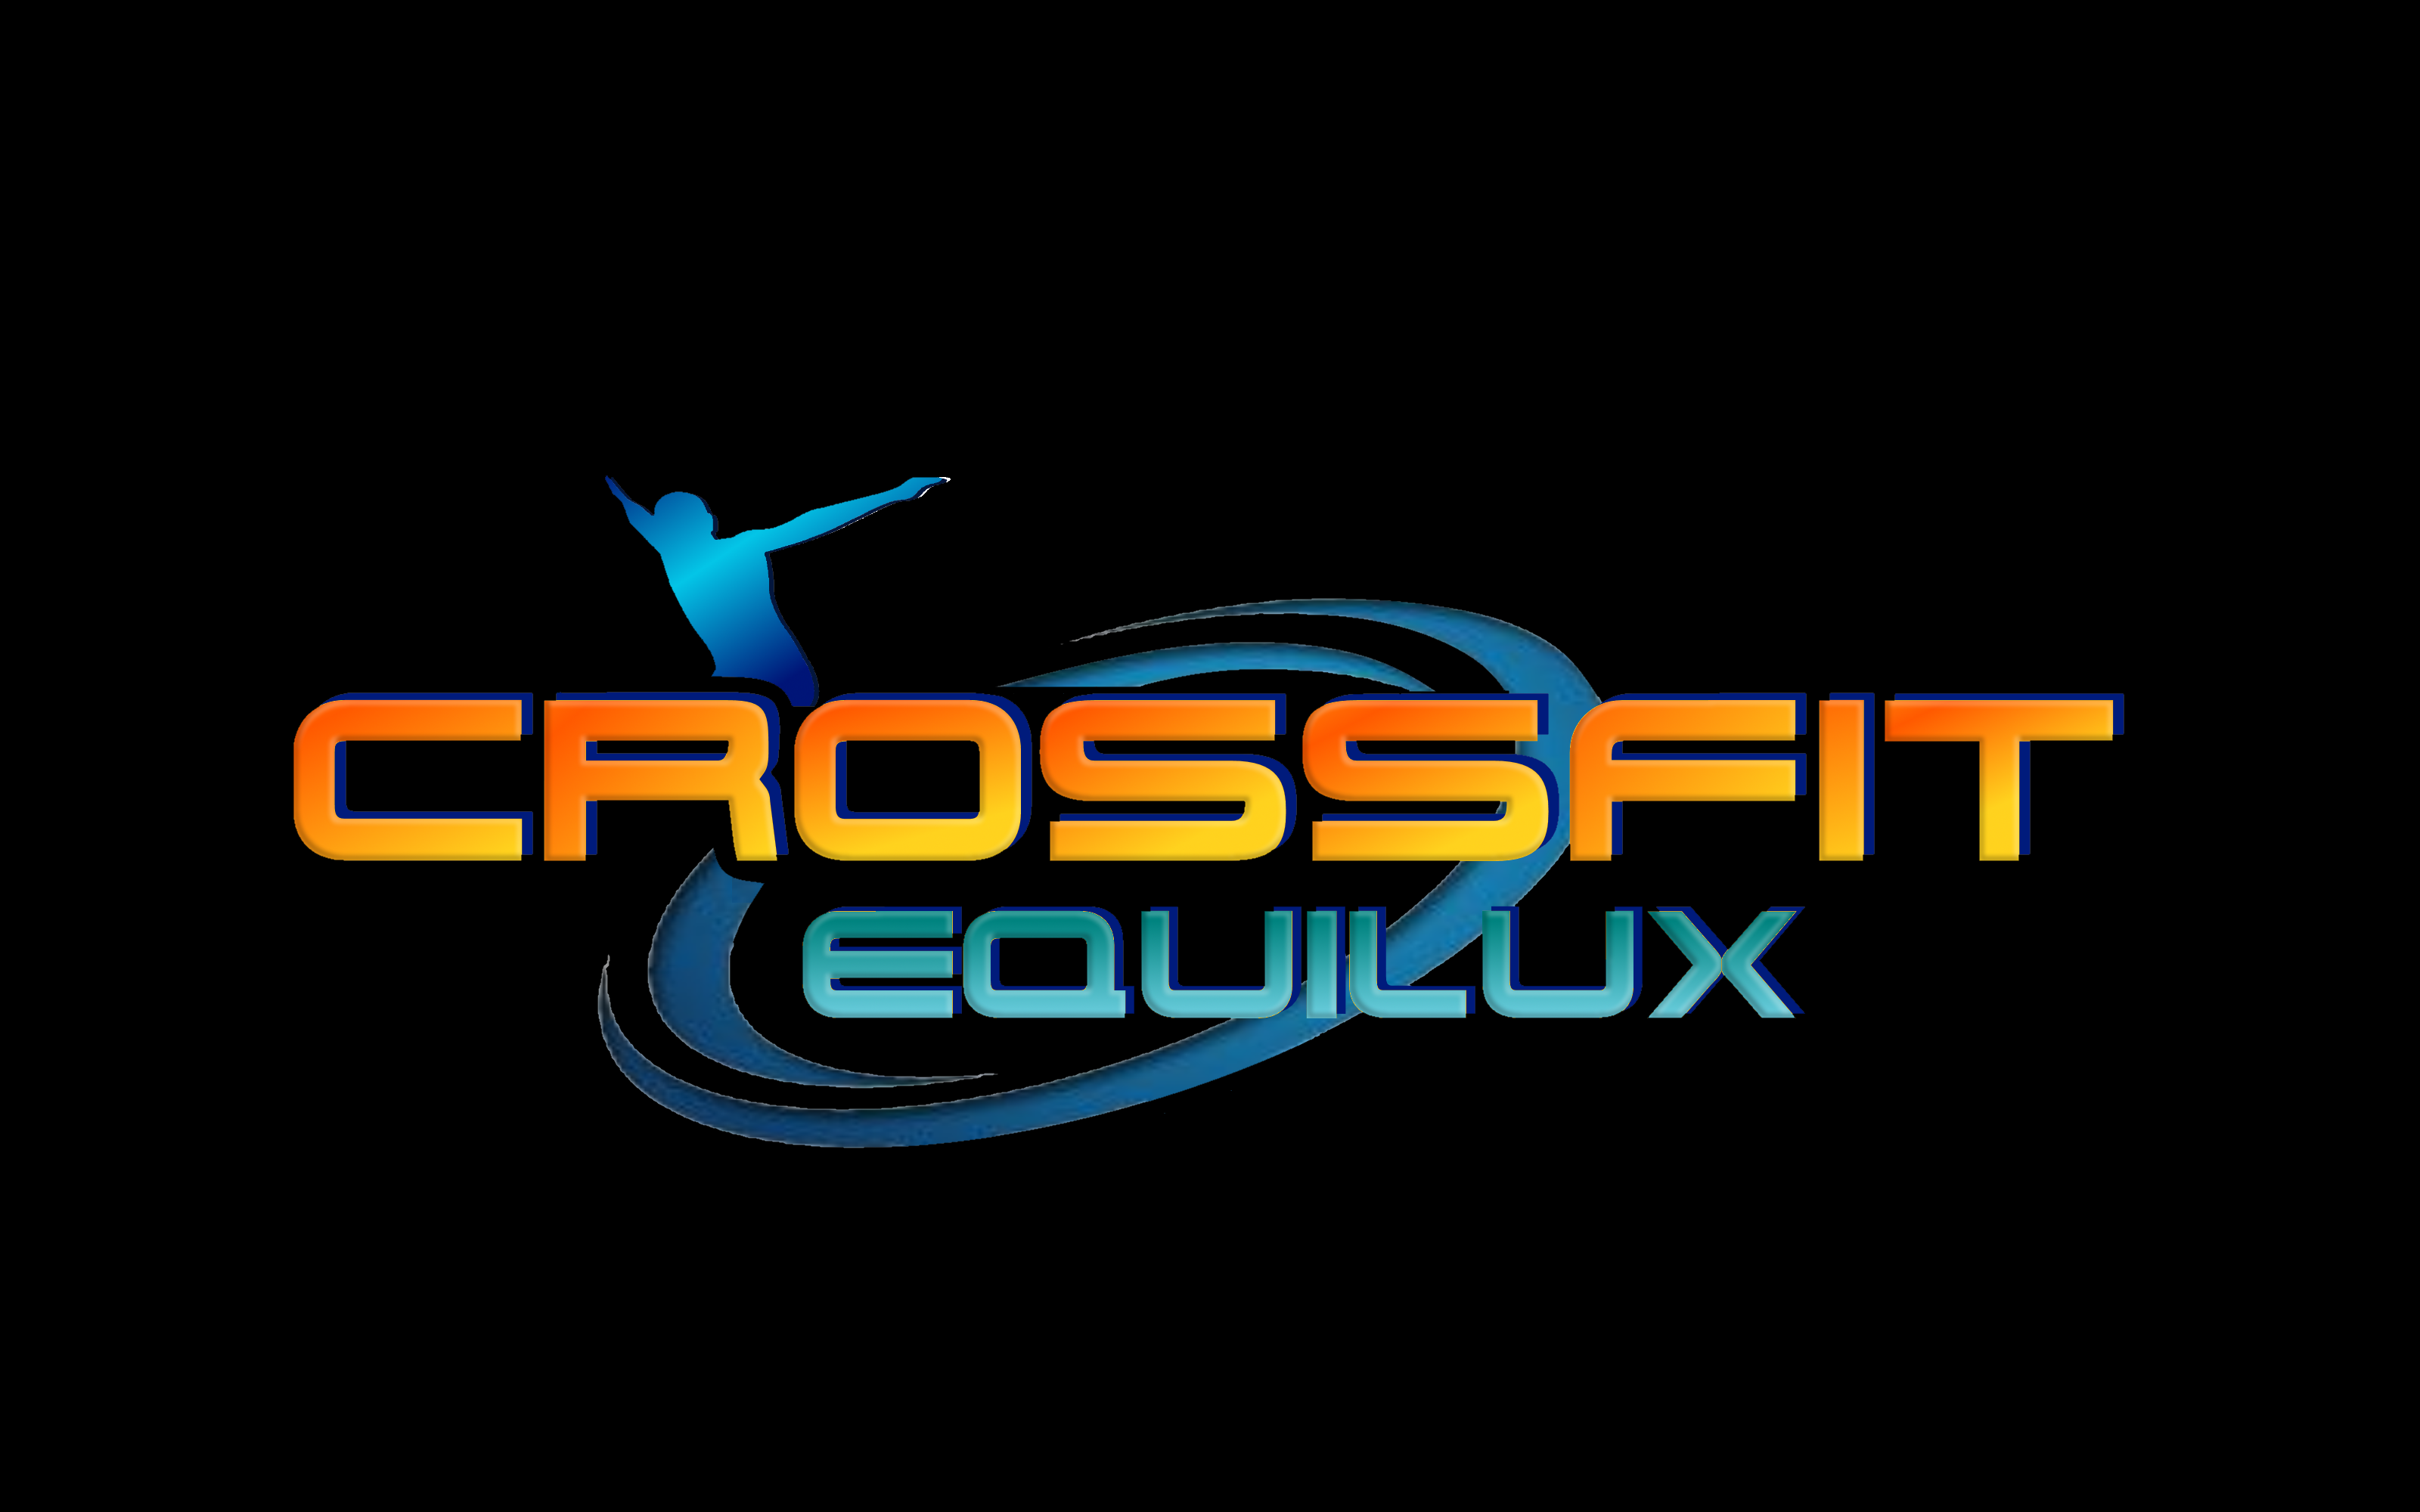 Logo Design by Roberto Bassi - Entry No. 88 in the Logo Design Contest Unique Logo Design Wanted for CrossFit Equilux.